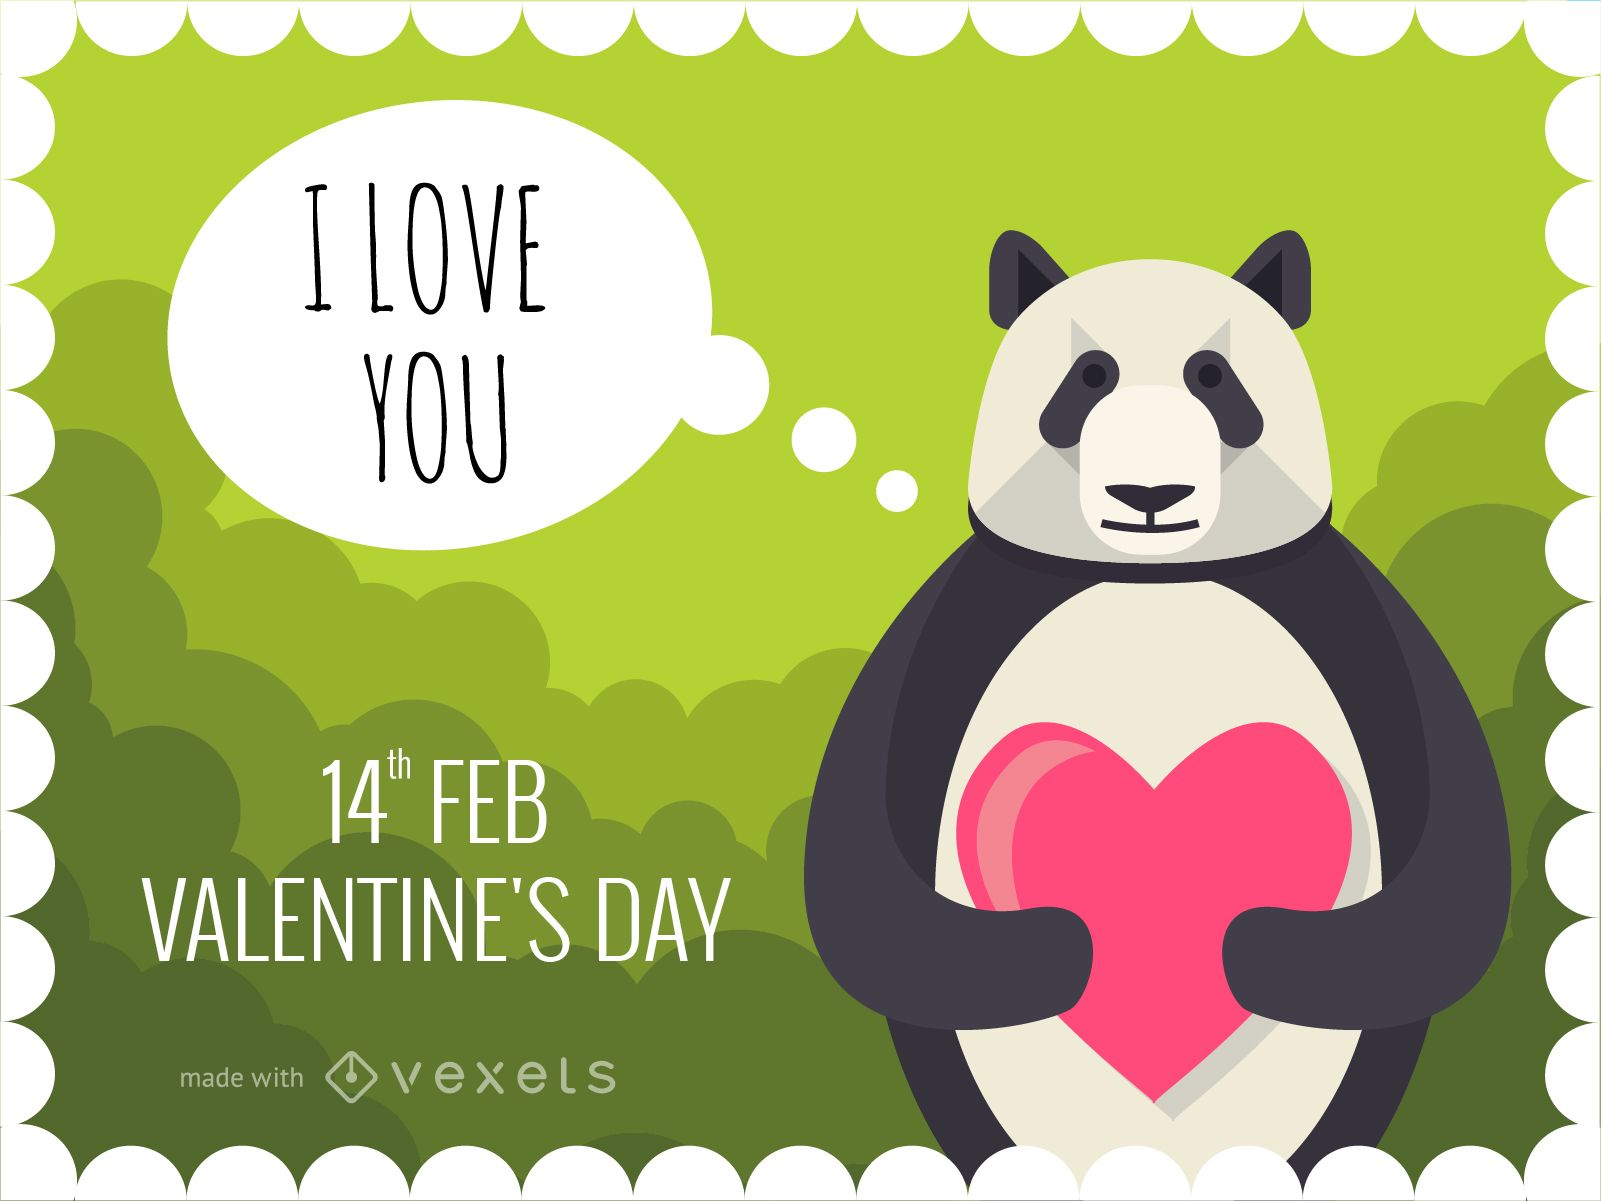 Valentine's Day card maker with cute animals